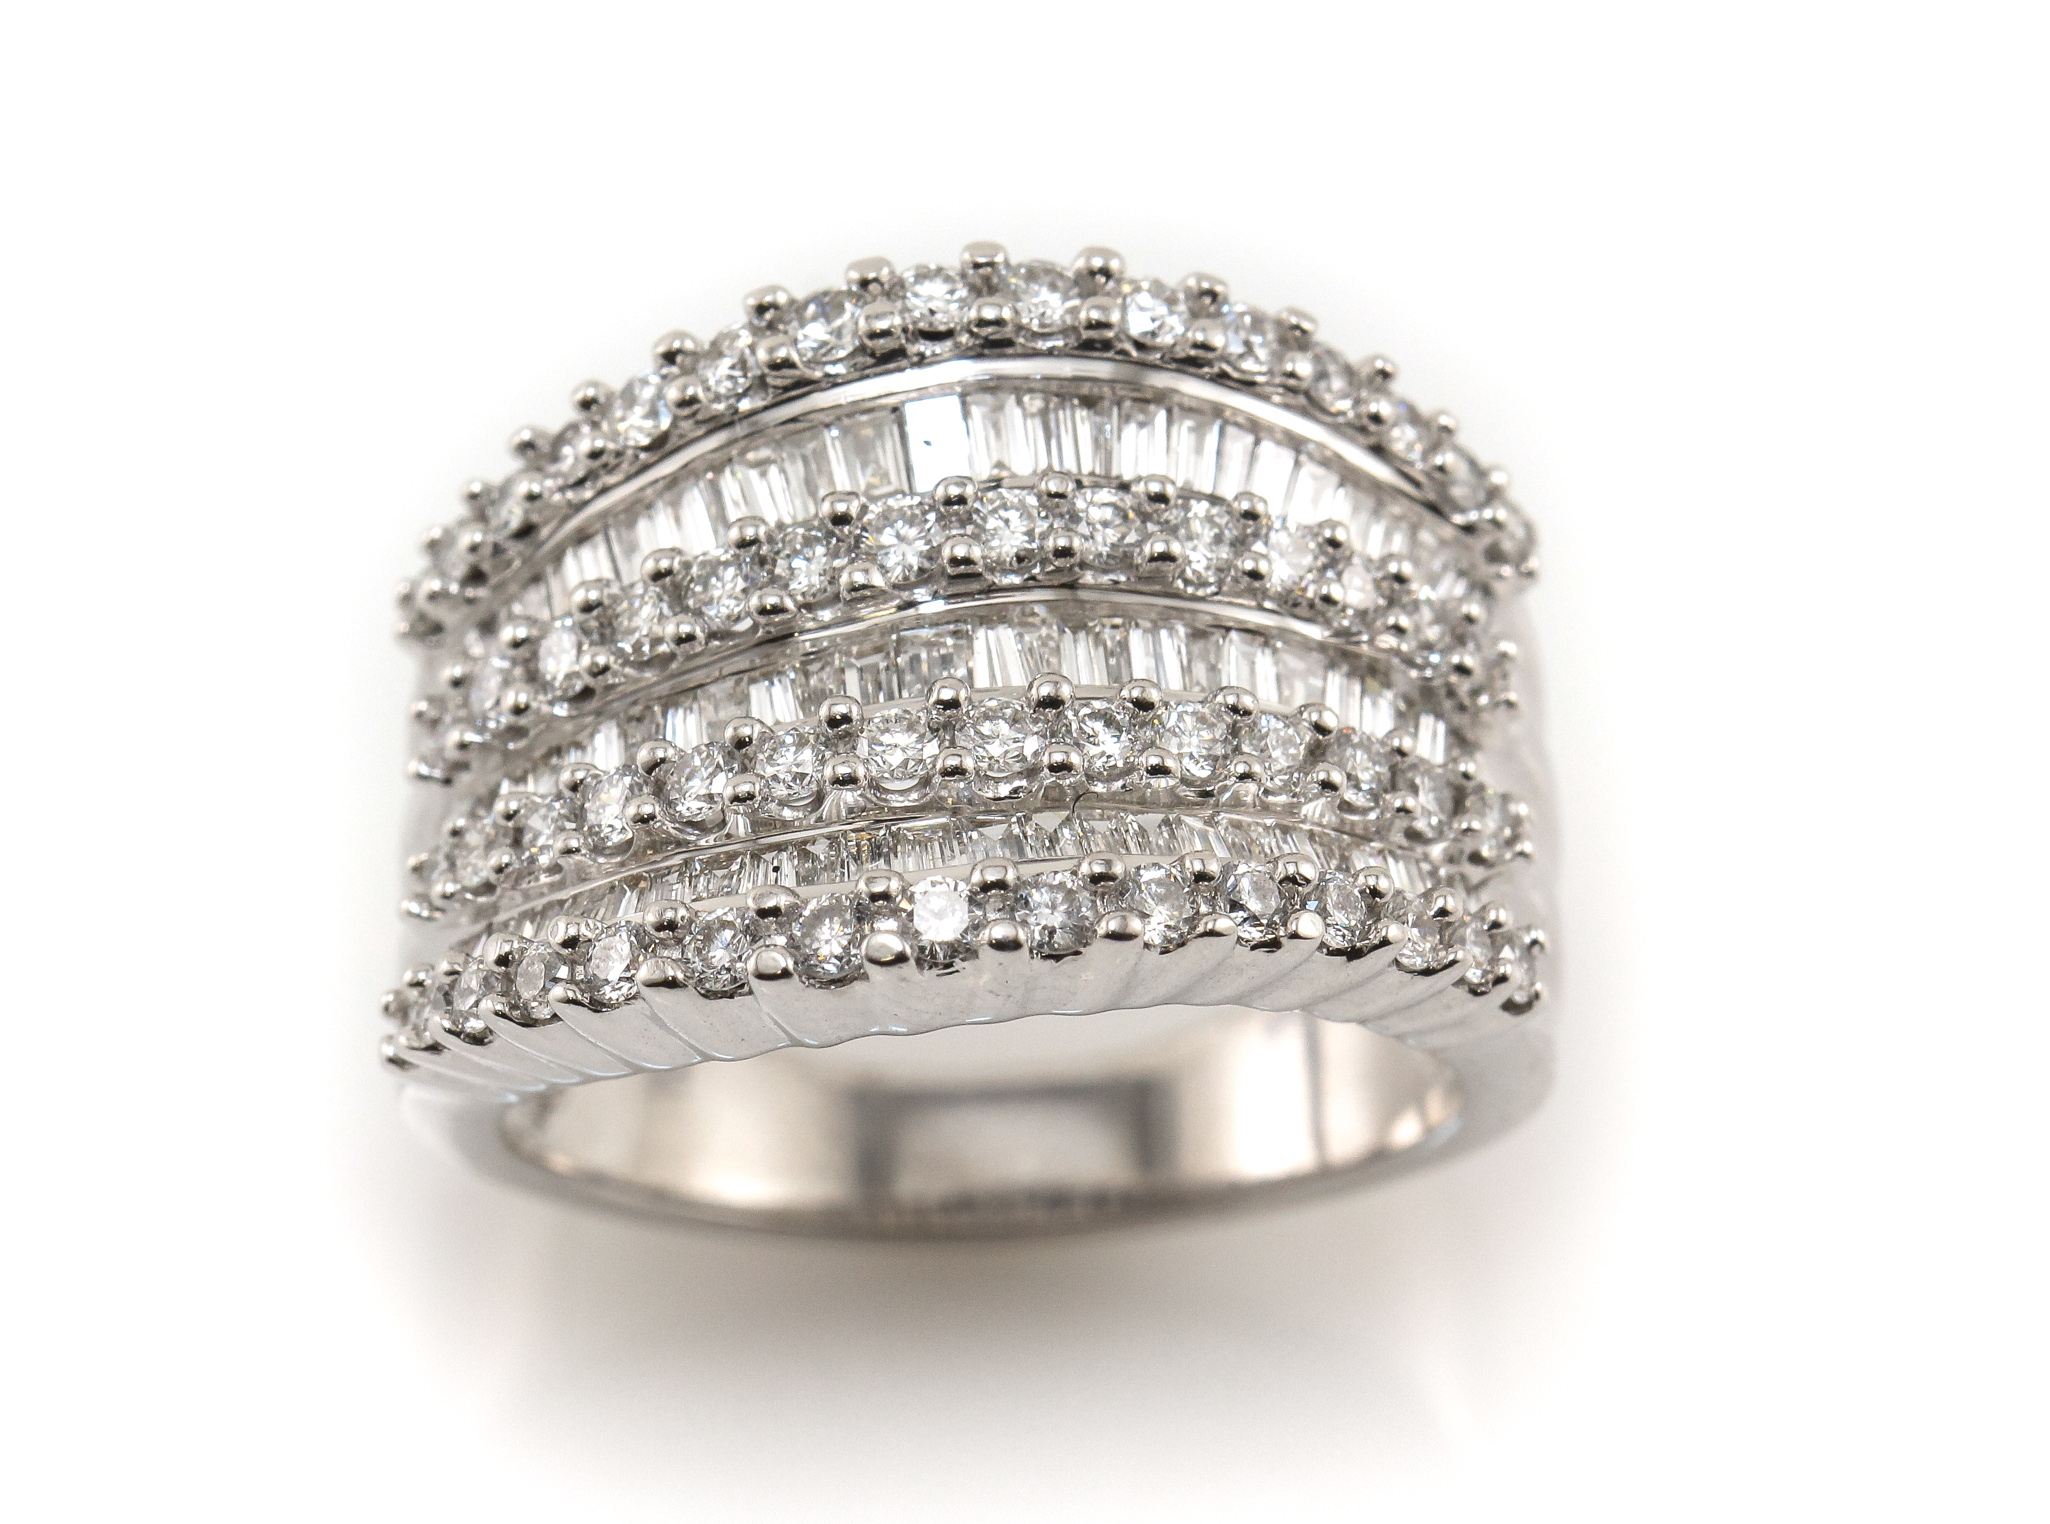 Details About 14k Diamond Ring White Gold Wide Multi Row Regarding Most Up To Date Baguette And Round Diamond Multi Row Anniversary Ring In White Gold (View 8 of 25)